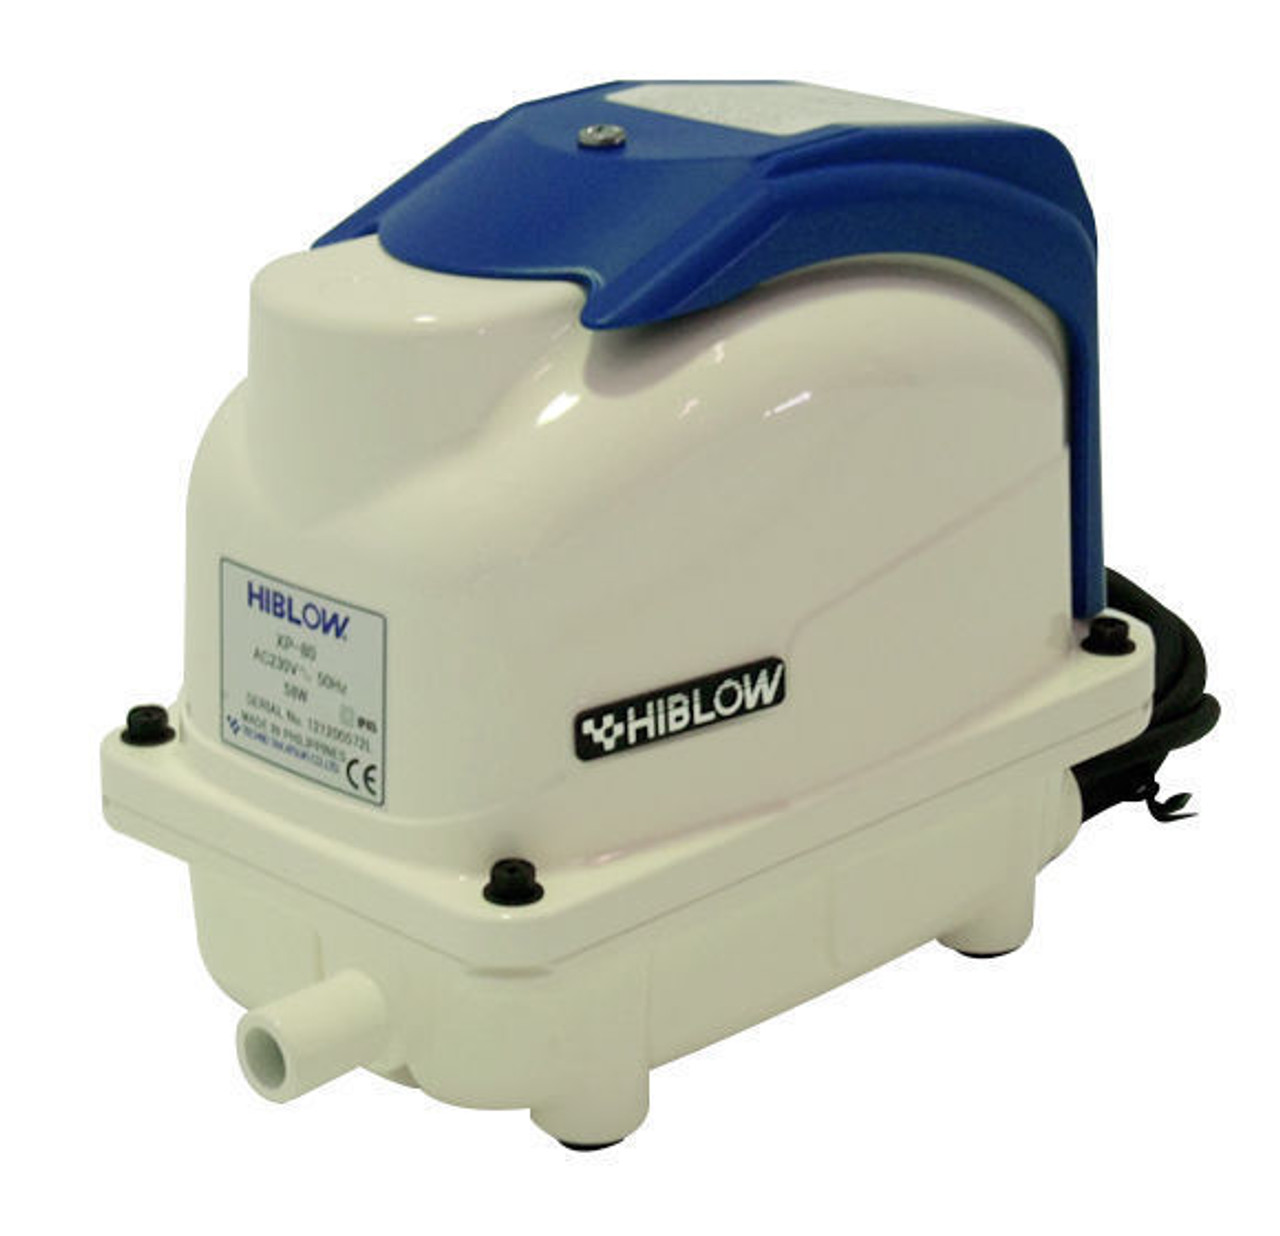 The New XP80 Hi-Blow Techno Takatsuki Air Pump for Water Treatment Units